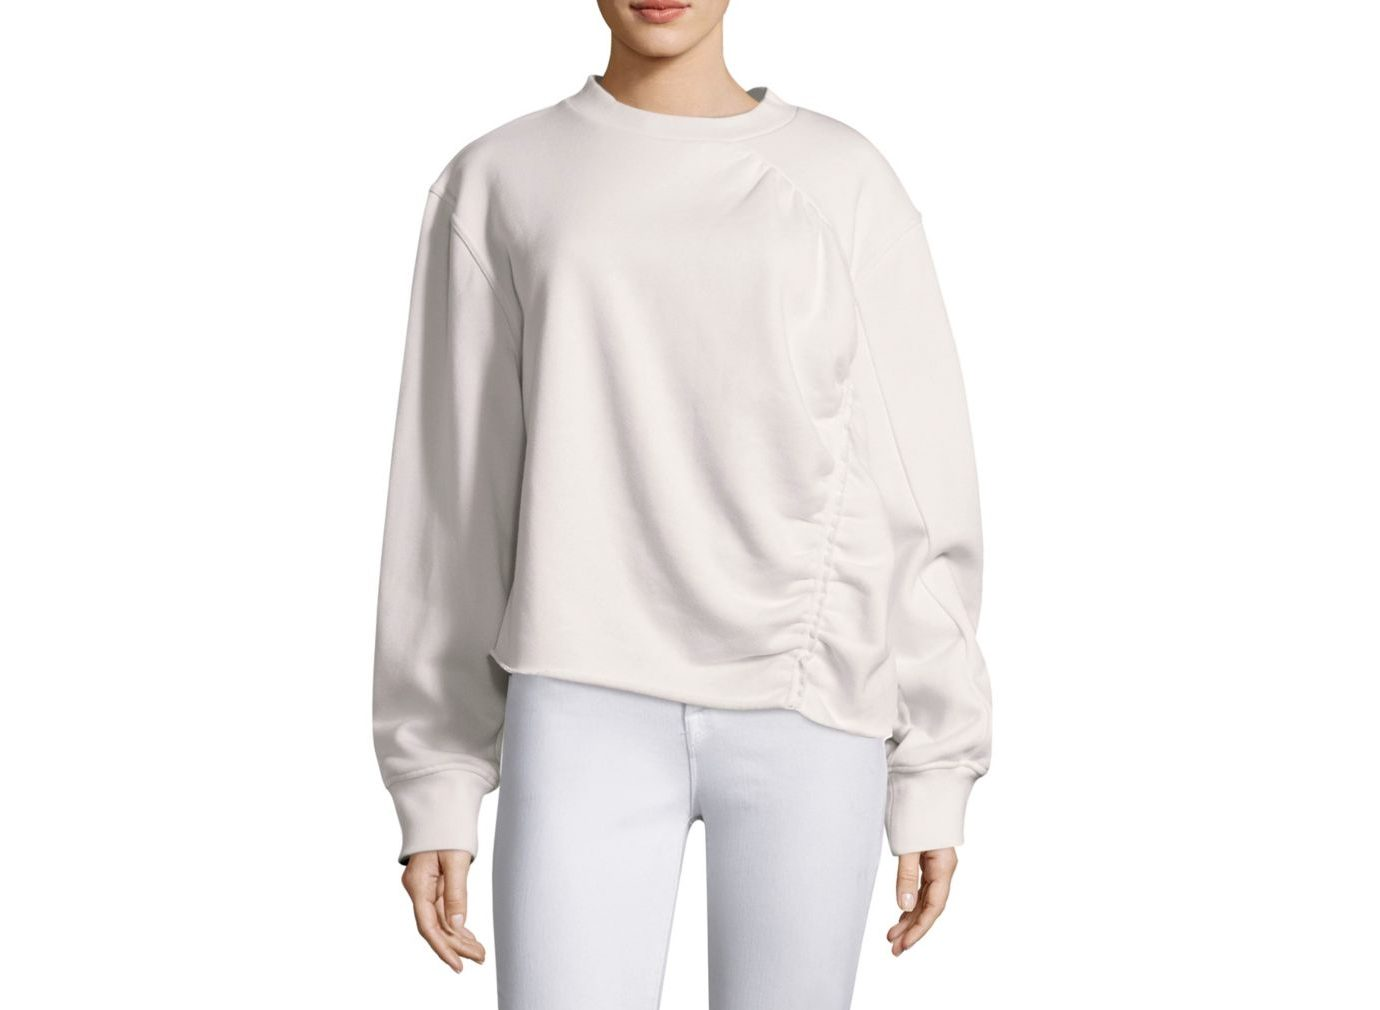 best sweatshirts, Public School Ashlei French Terry sweatshirt